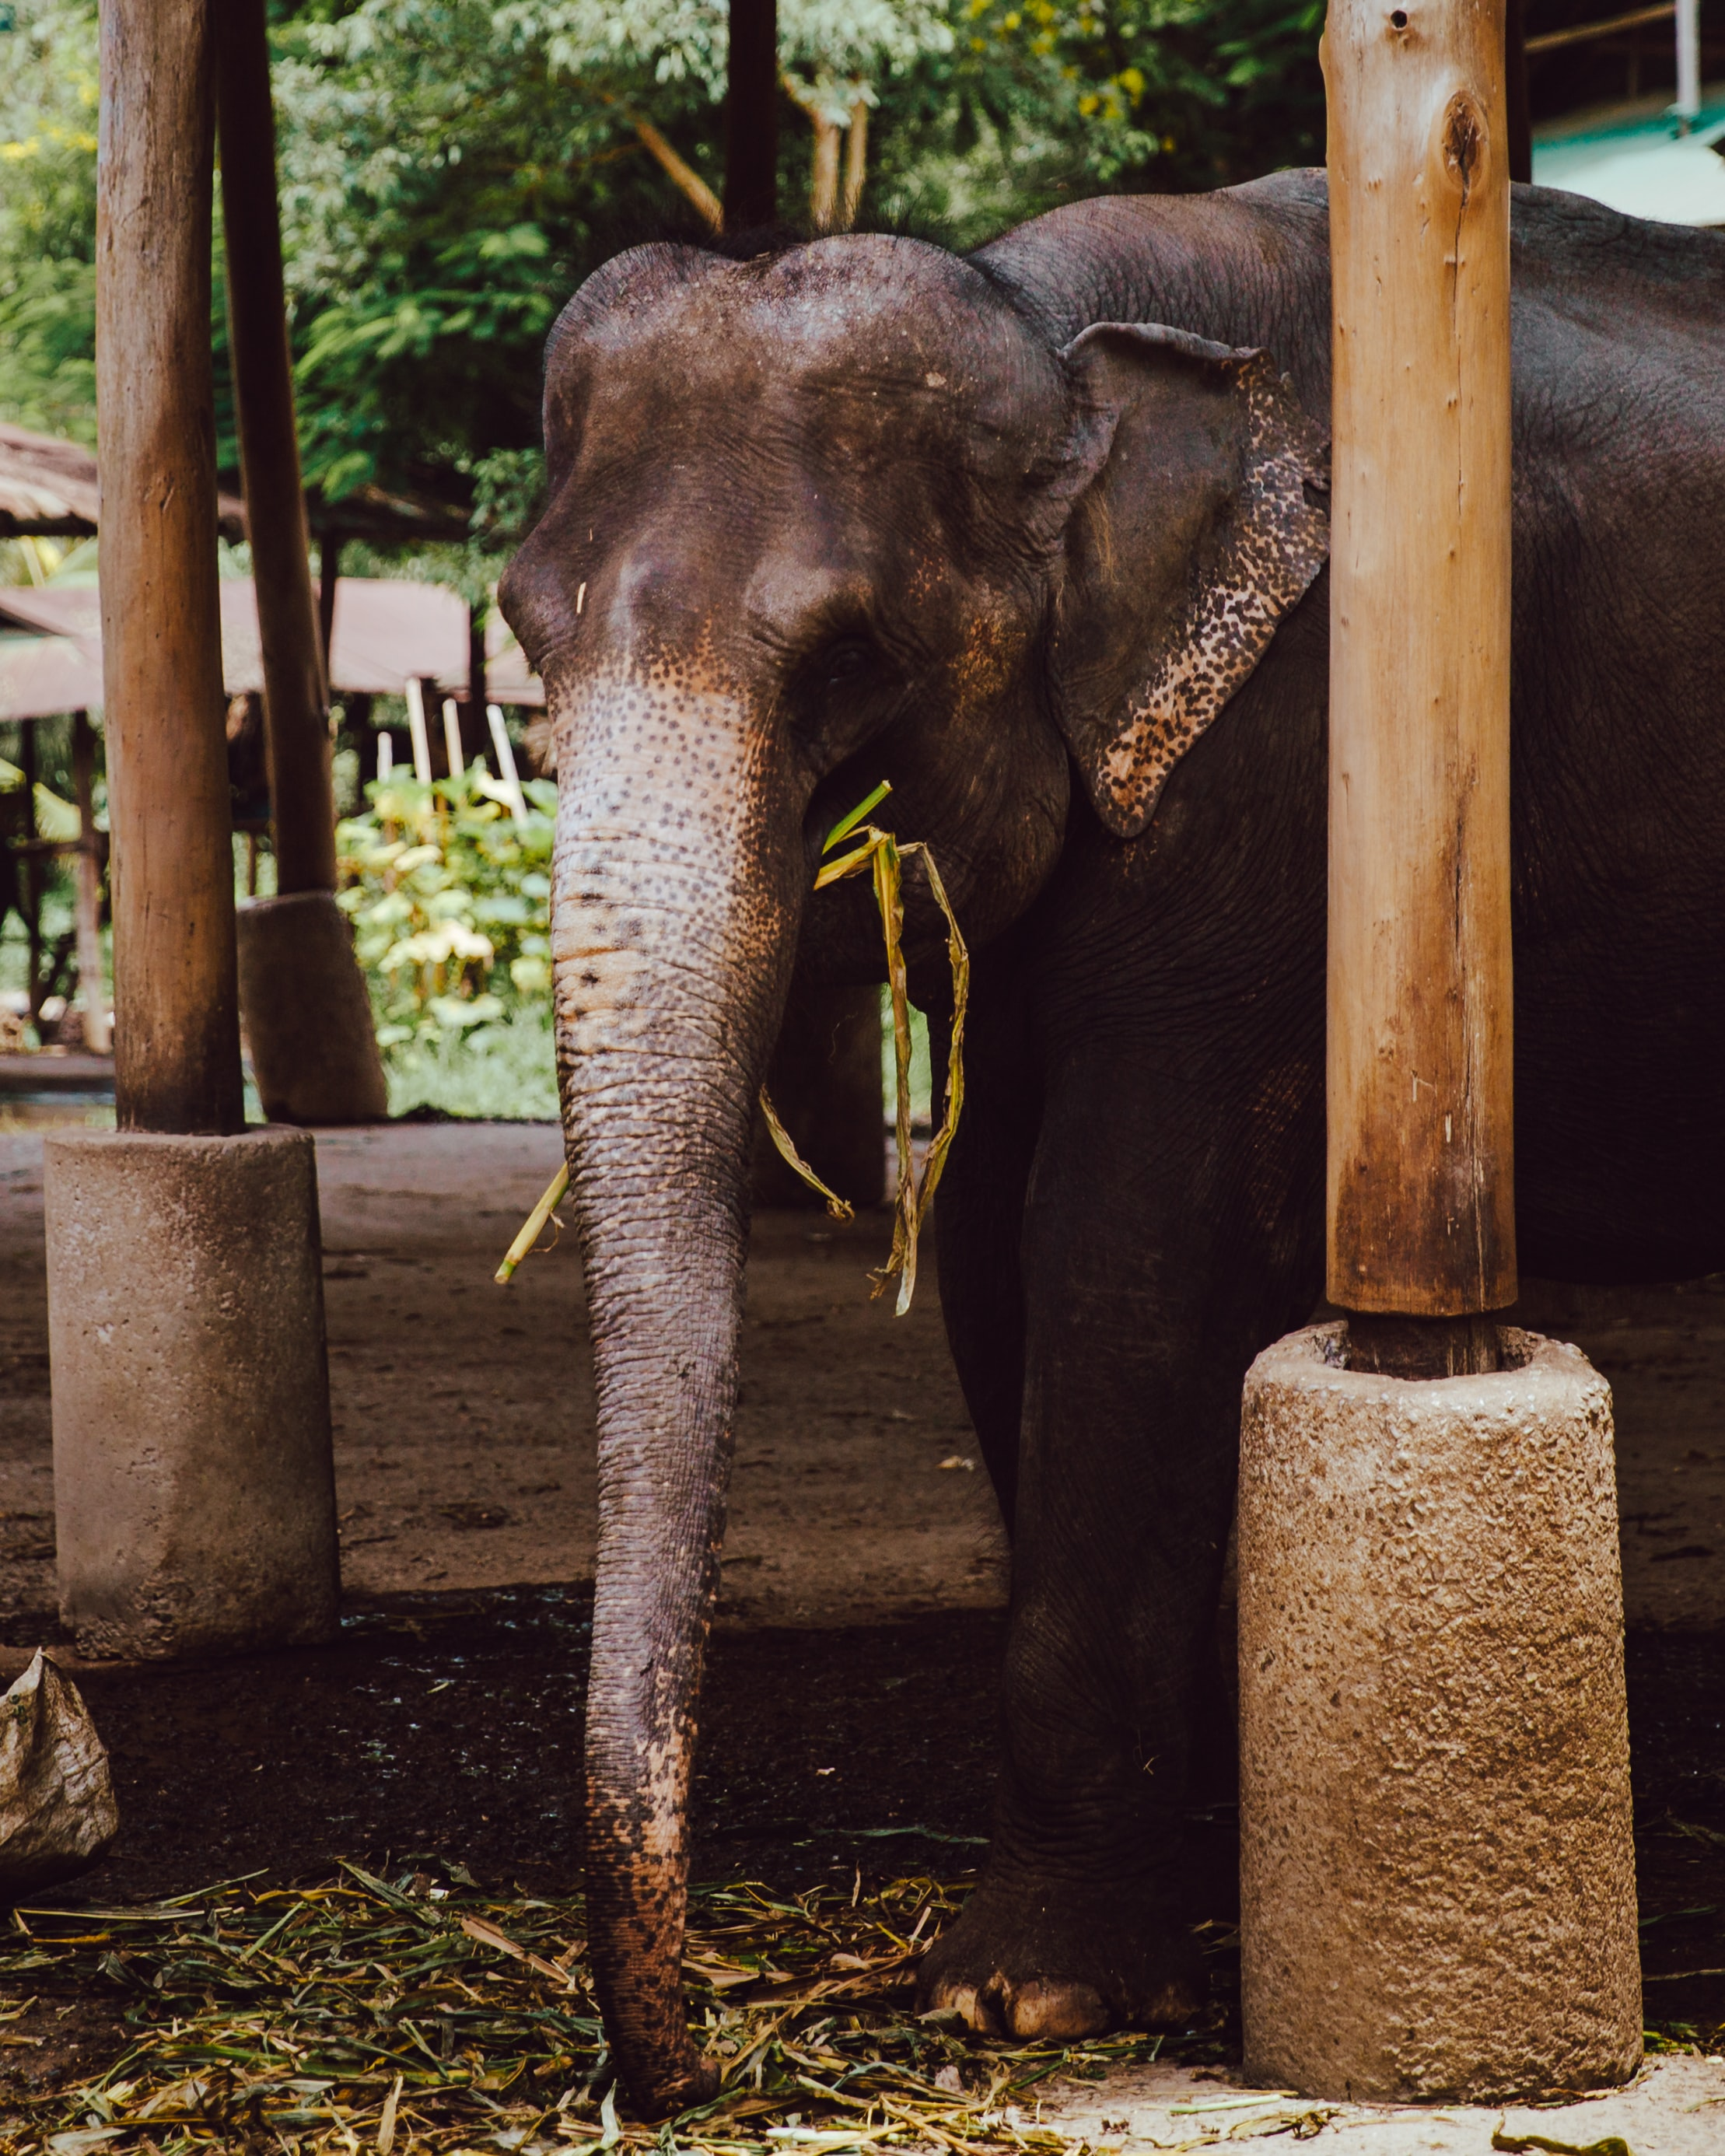 brown elephant near wooden pillar